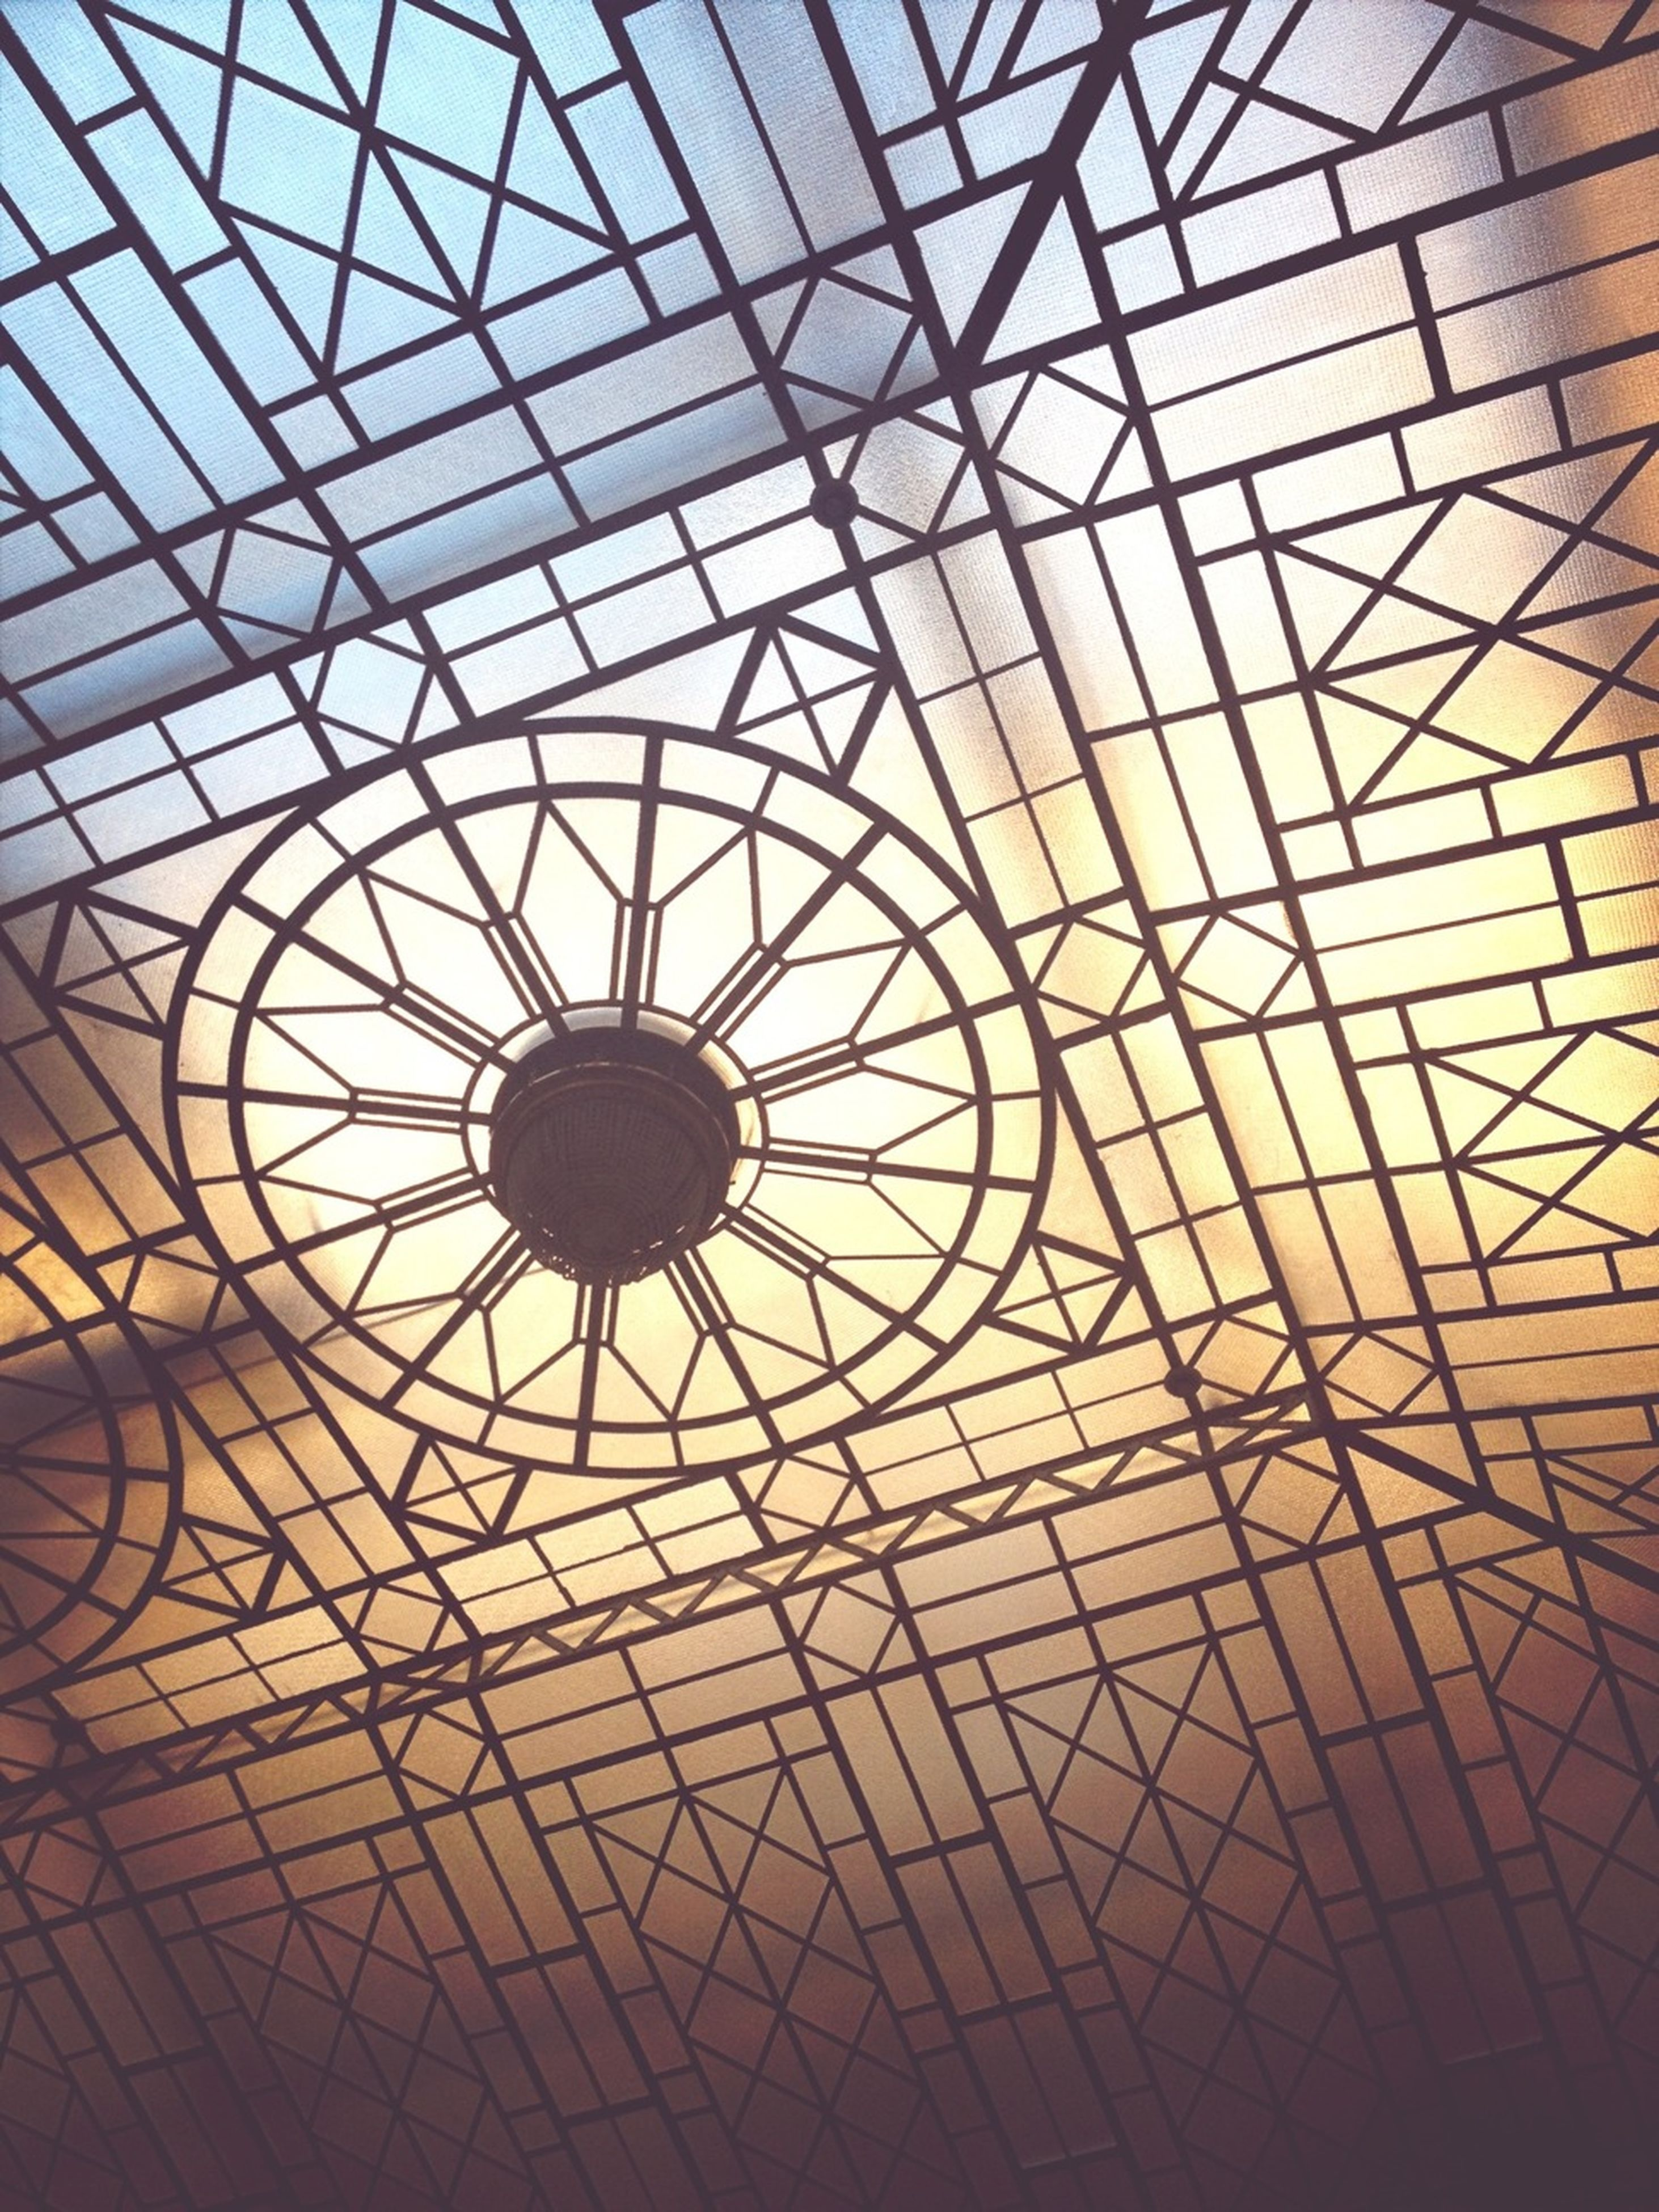 indoors, ceiling, pattern, architecture, built structure, design, full frame, geometric shape, backgrounds, skylight, architectural feature, low angle view, glass - material, circle, directly below, no people, modern, metal, shape, grid